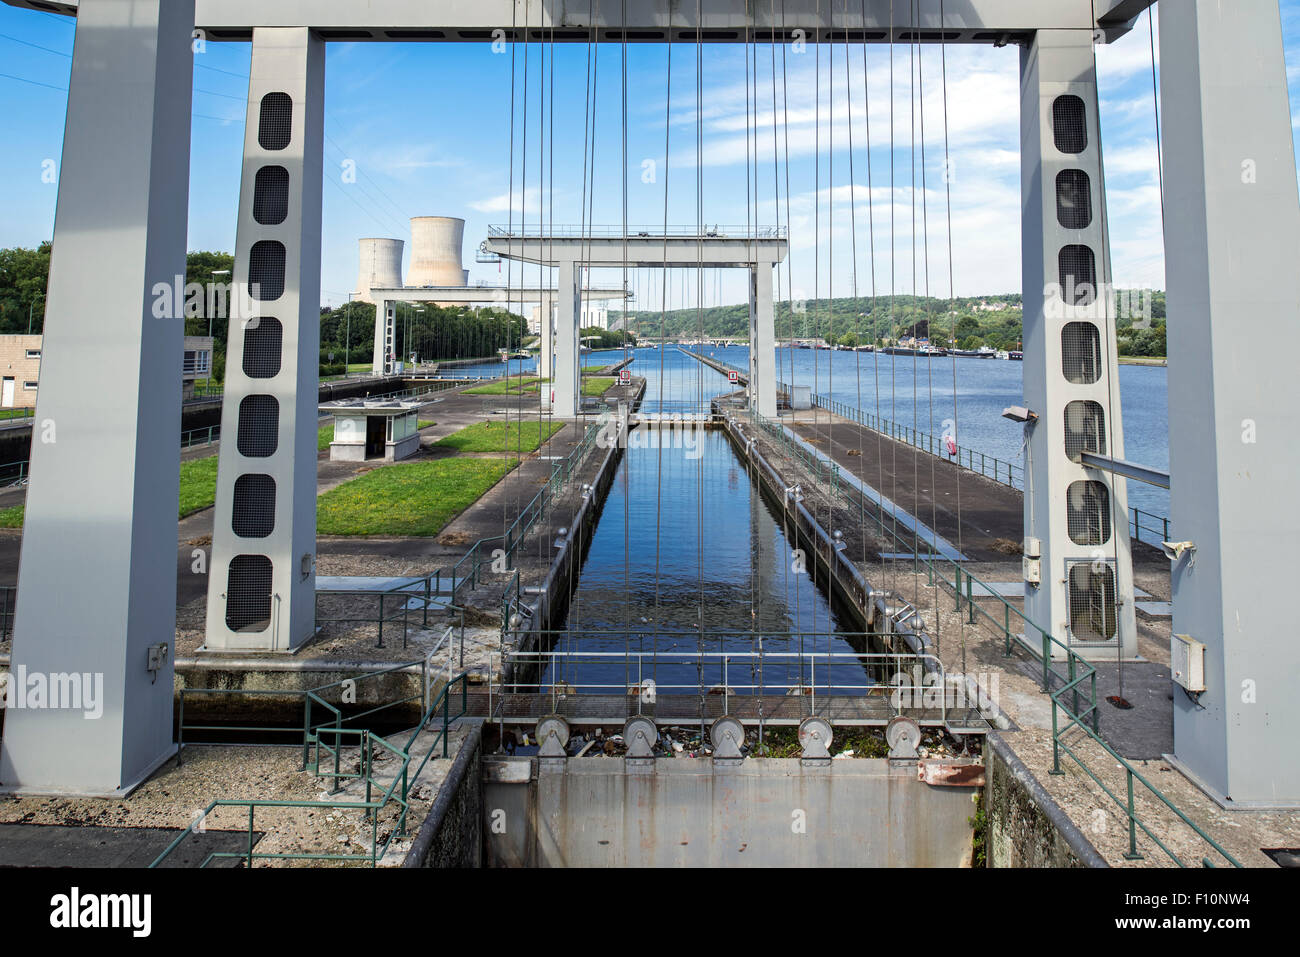 Closed sluice gate at the écluse de Tihange, lock on the Meuse River at Huy / Hoei, Liège / Luik, Belgium - Stock Image